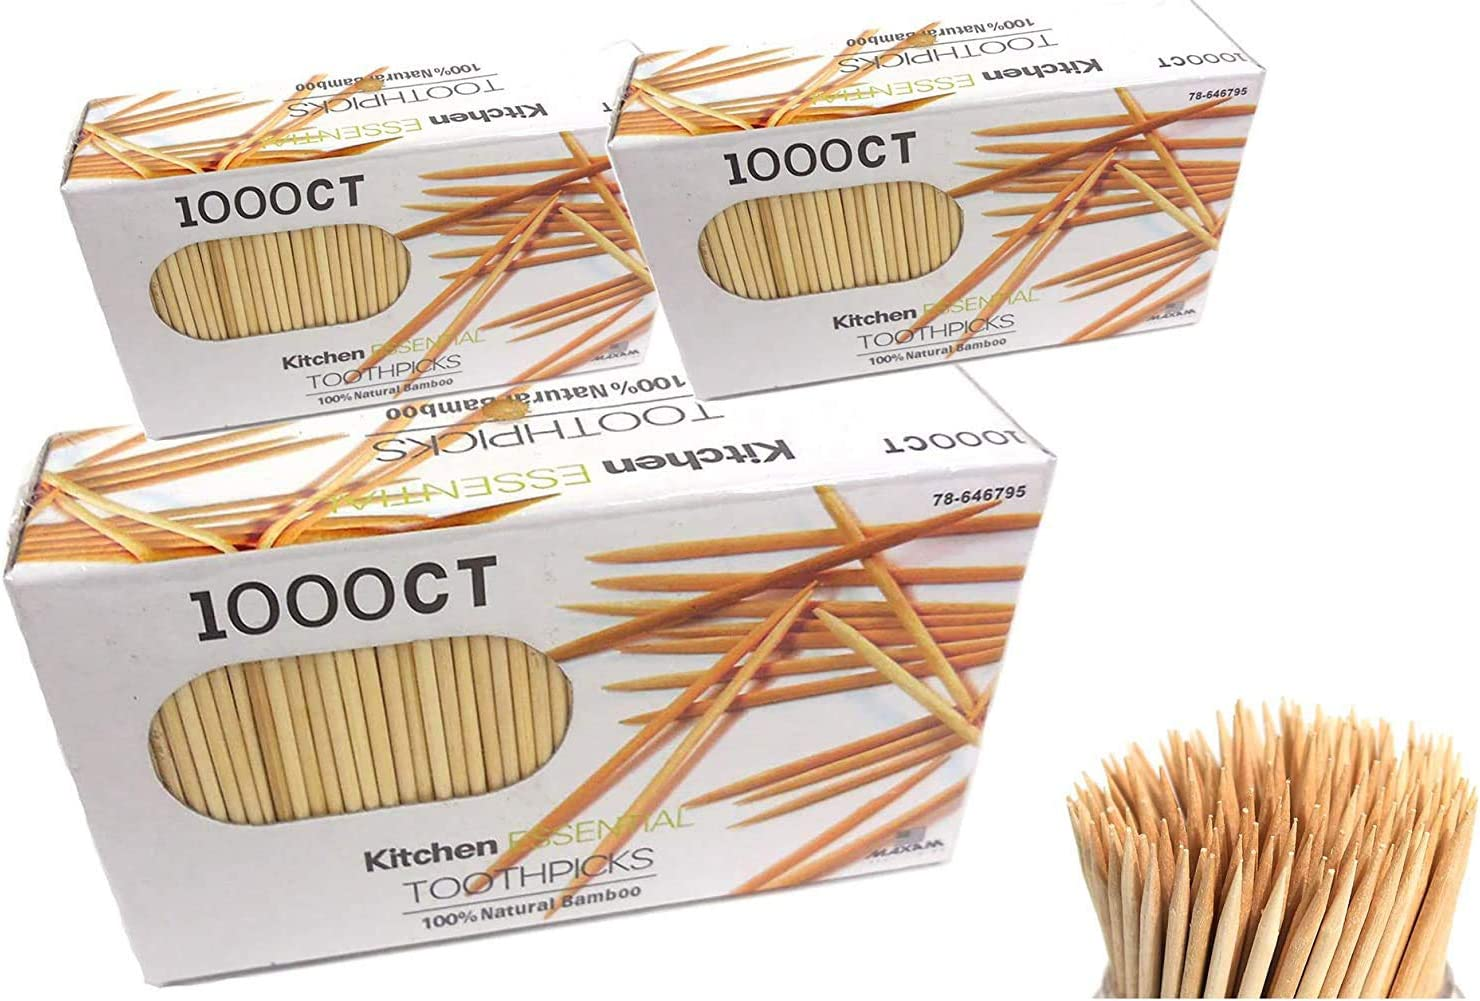 National products 3000 Count 100% Natural Bamboo Kitchen by quality assurance Essential Toothpicks